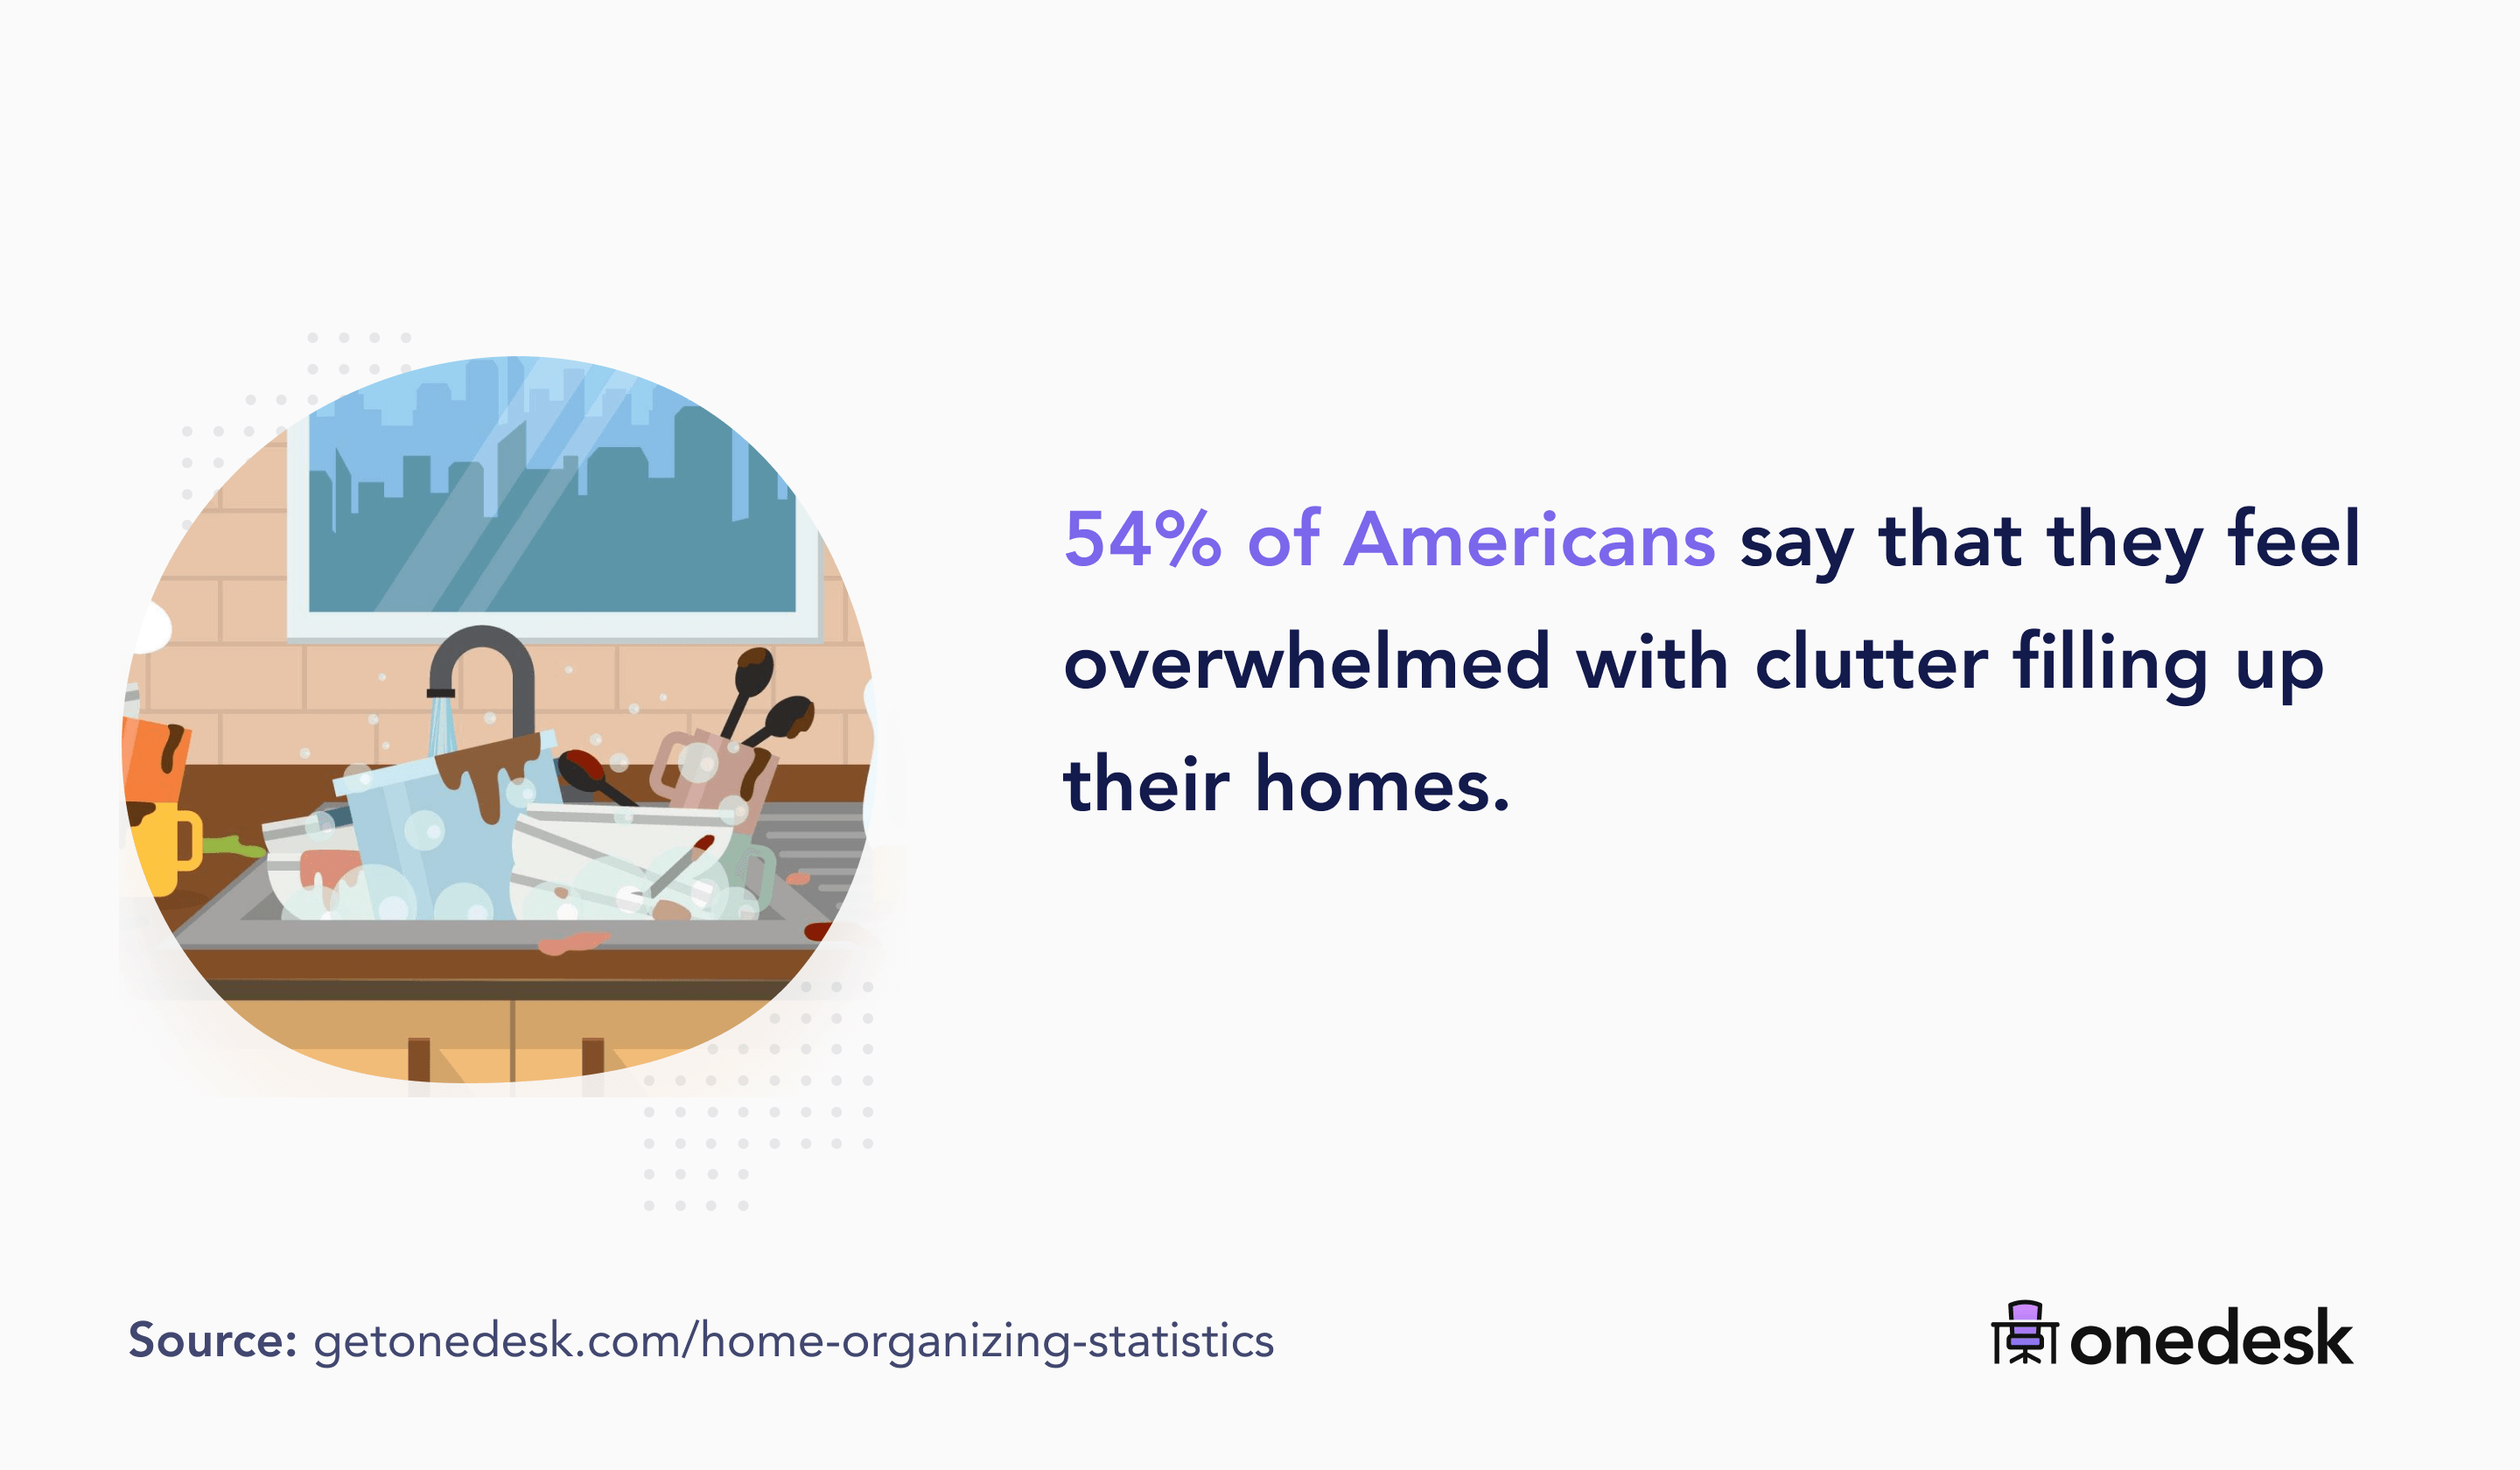 Americans are overwhelmed with clutter